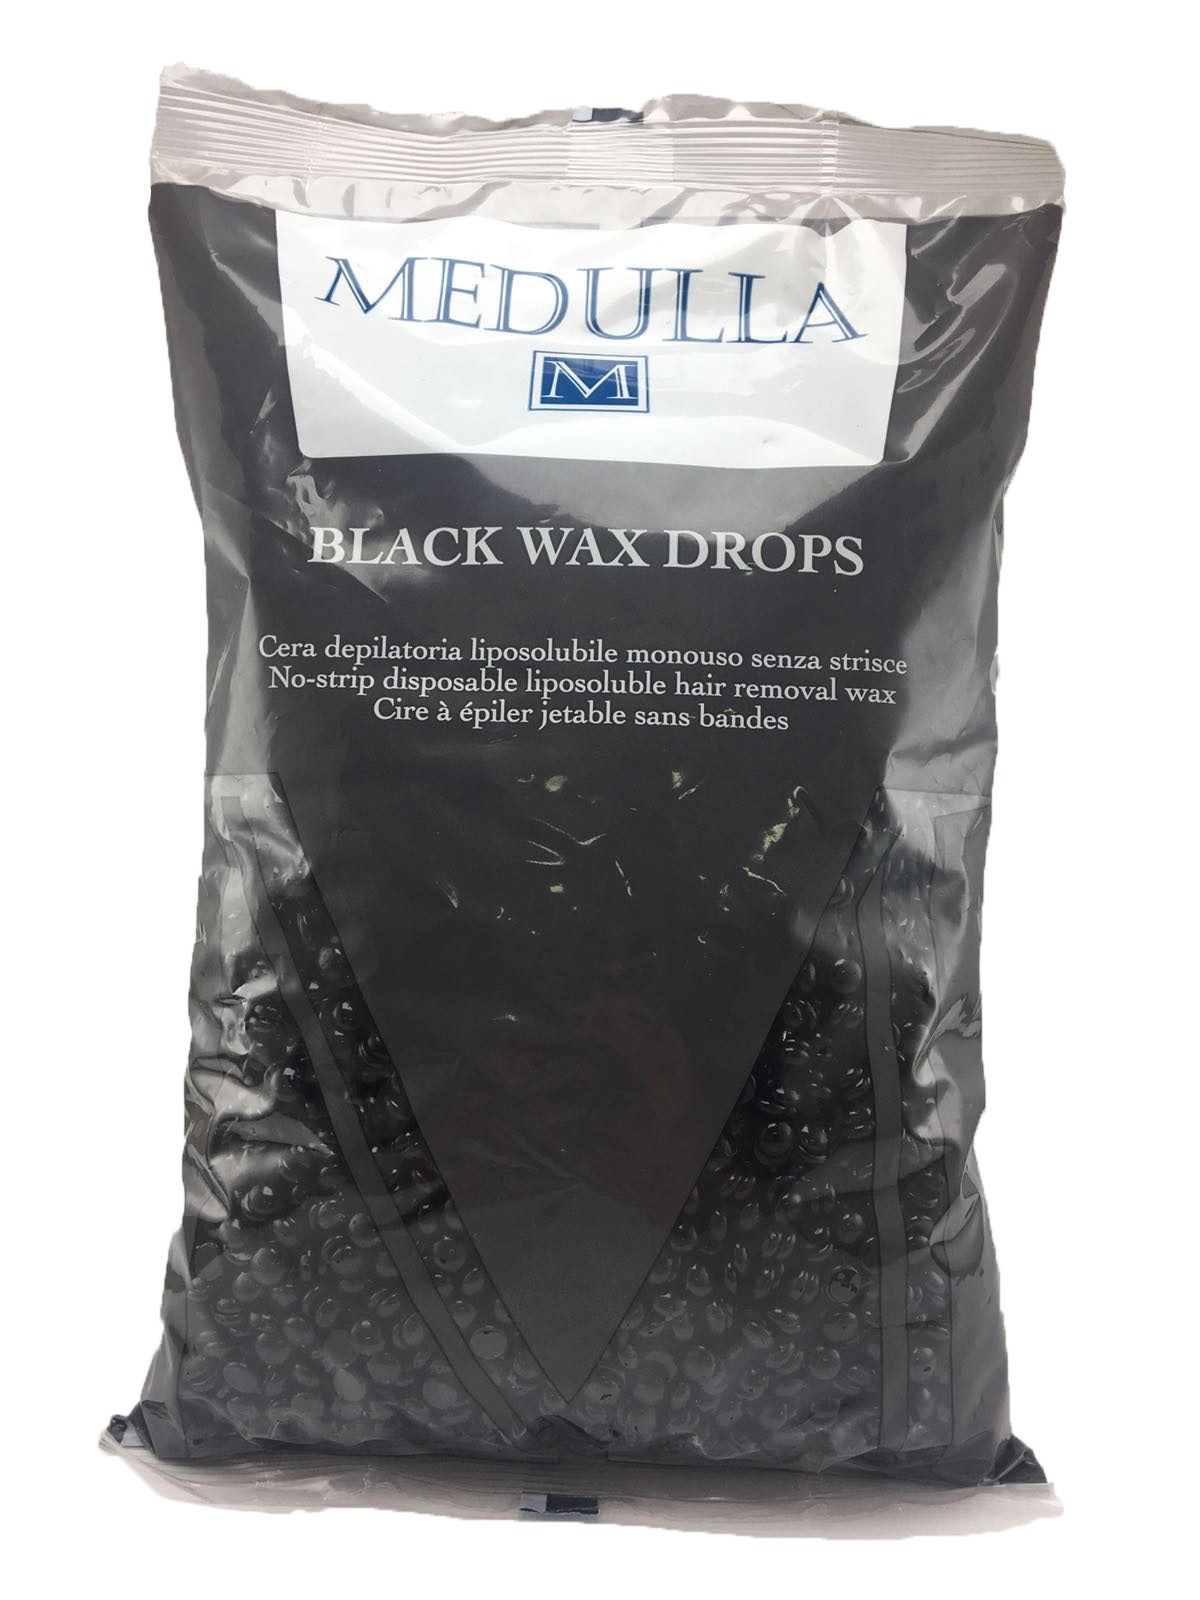 MEDULLA CERA DEPILATORIA BRASILIANA LIPOSOLUBILE BLACK WAX DROPS 800 G